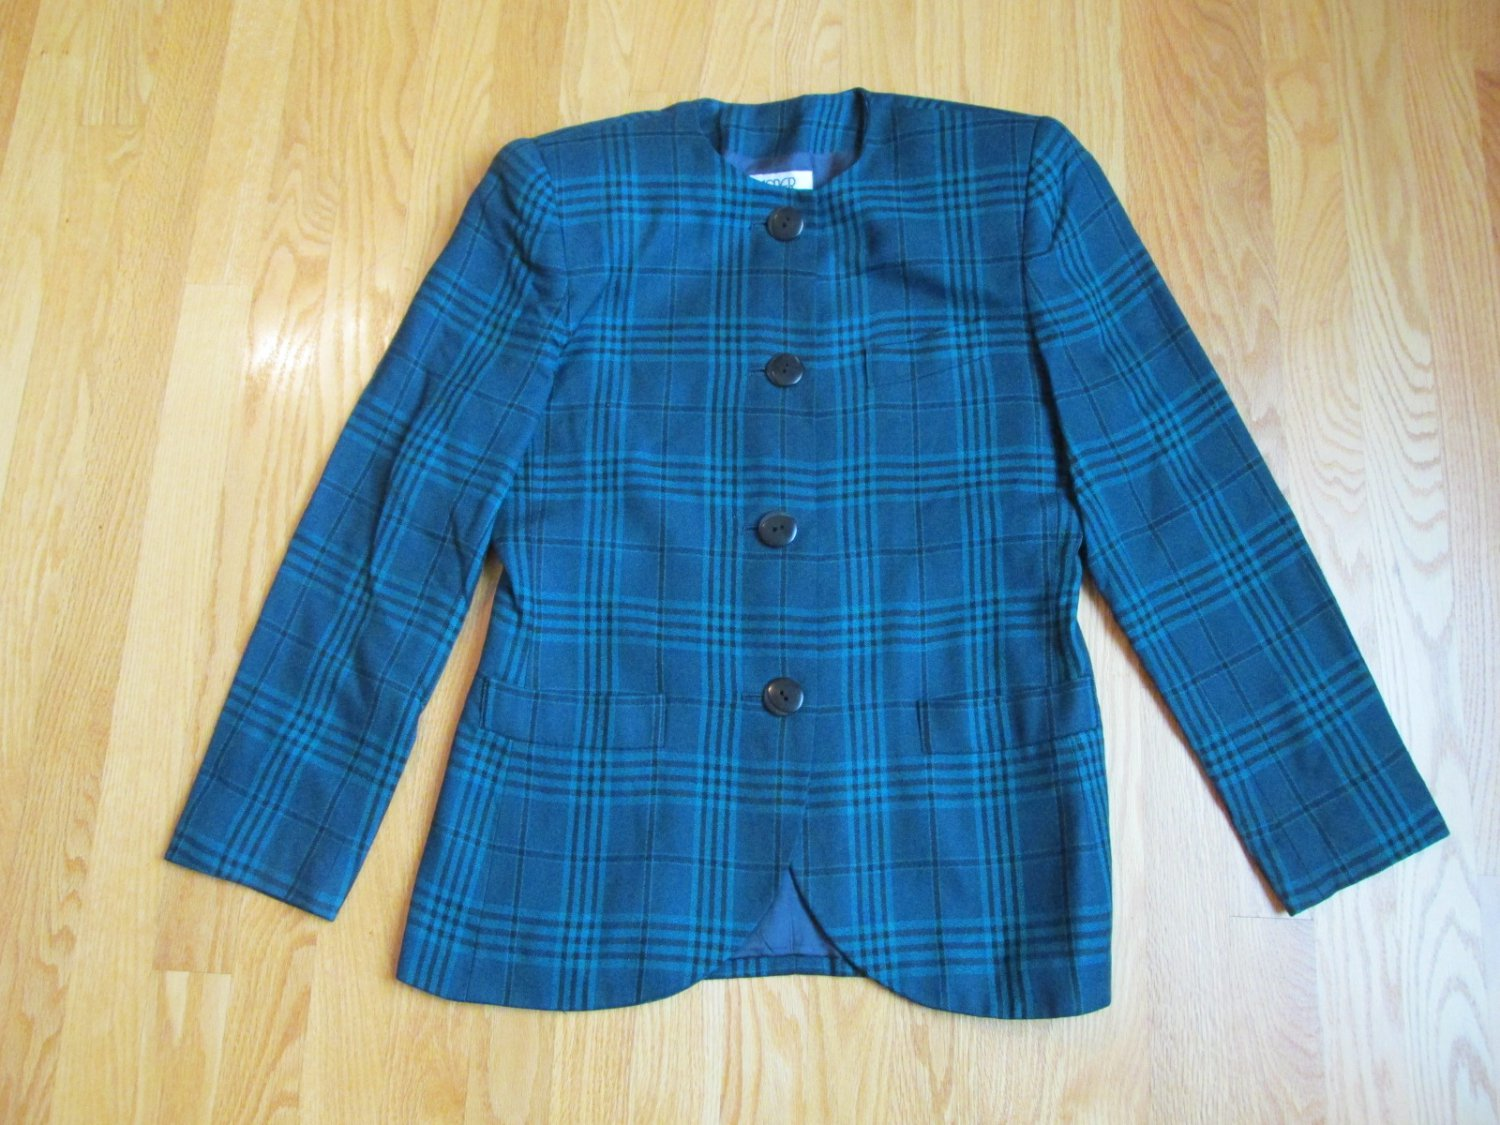 KASPER FOR A.S.L. WOMEN'S SIZE 8 SUIT JACKET TEAL & BLACK PLAID OFFICE CAREER TAILORED BLAZER